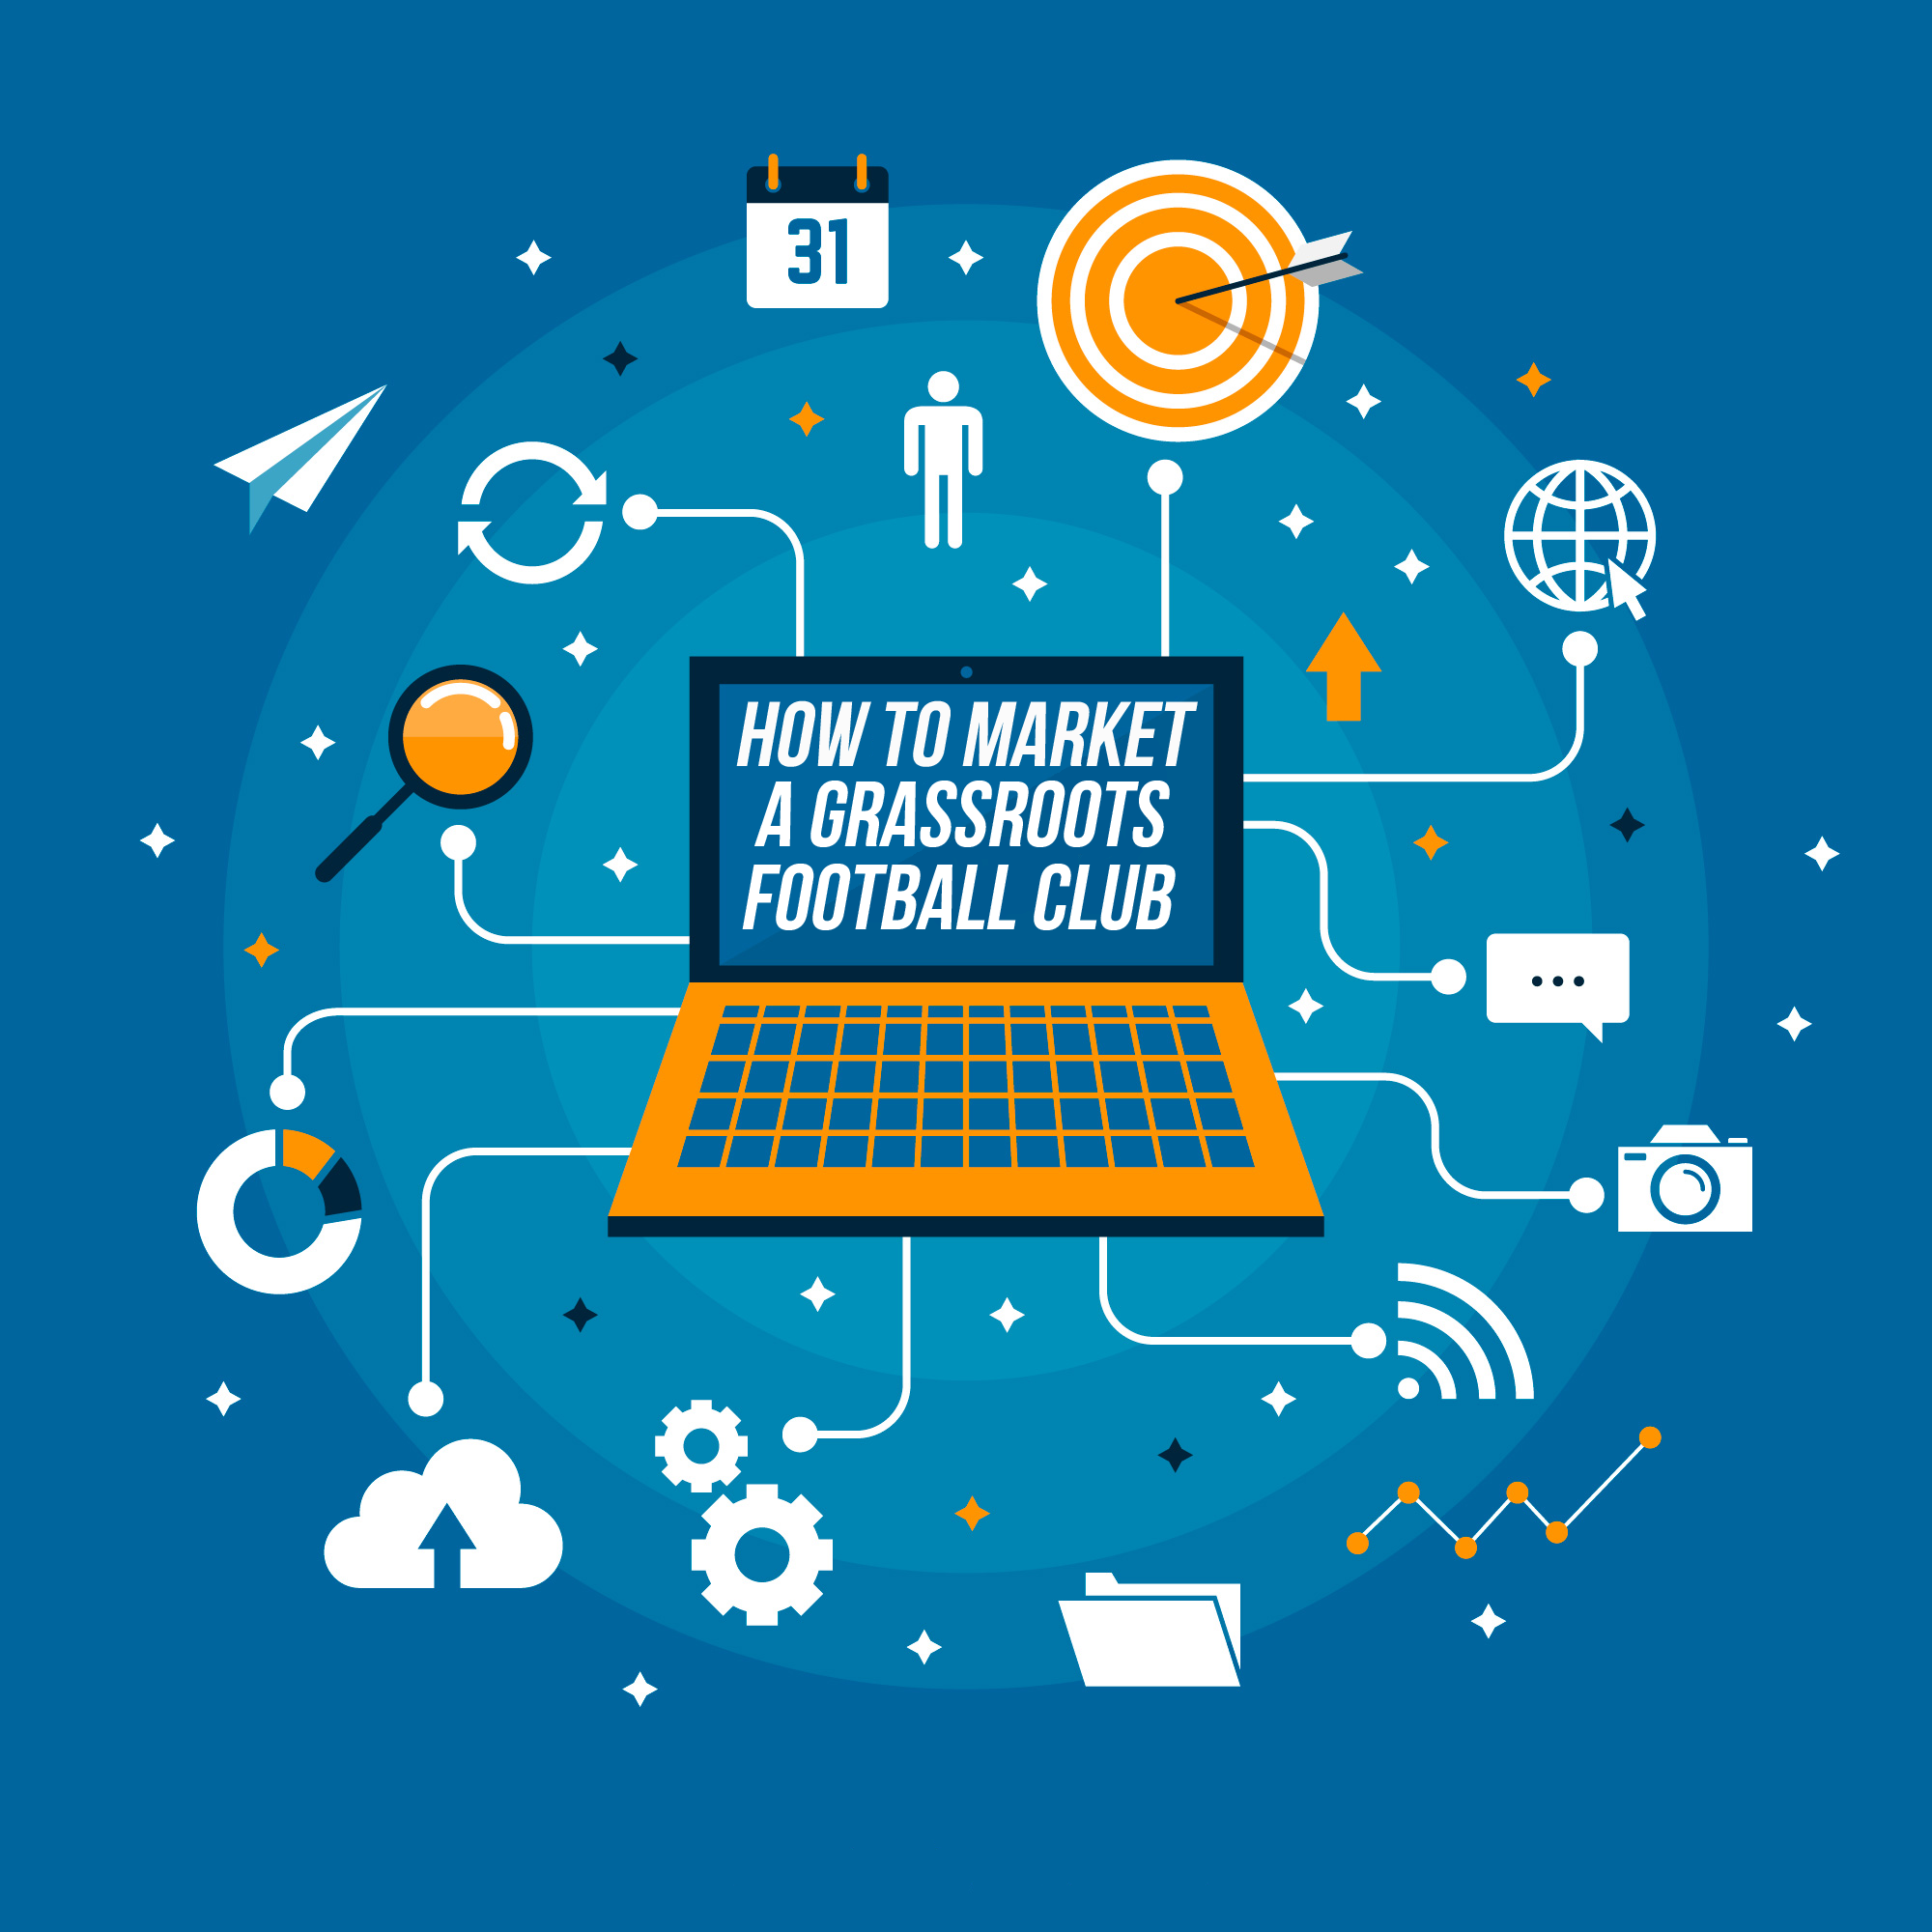 How to market a grassroots football club